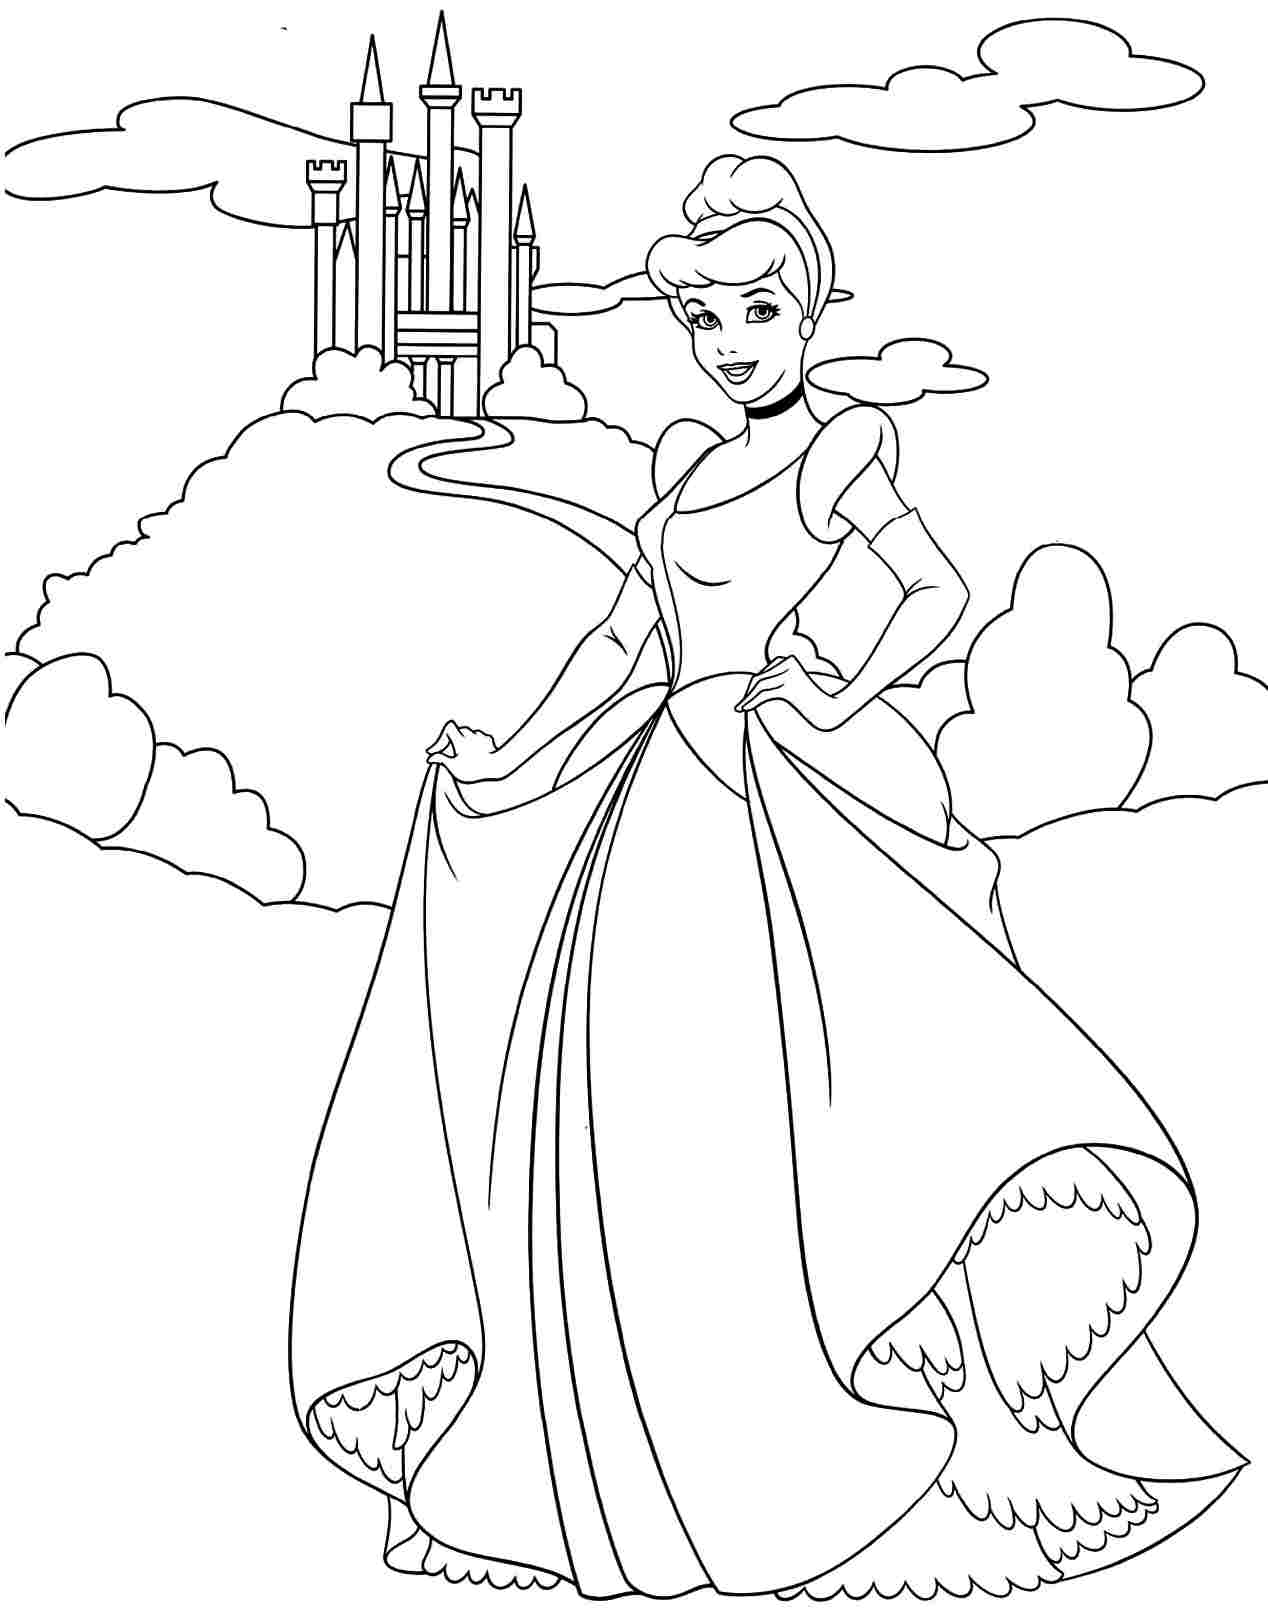 1268x1613 cinderella coloring pages printable cindrella for kids to print